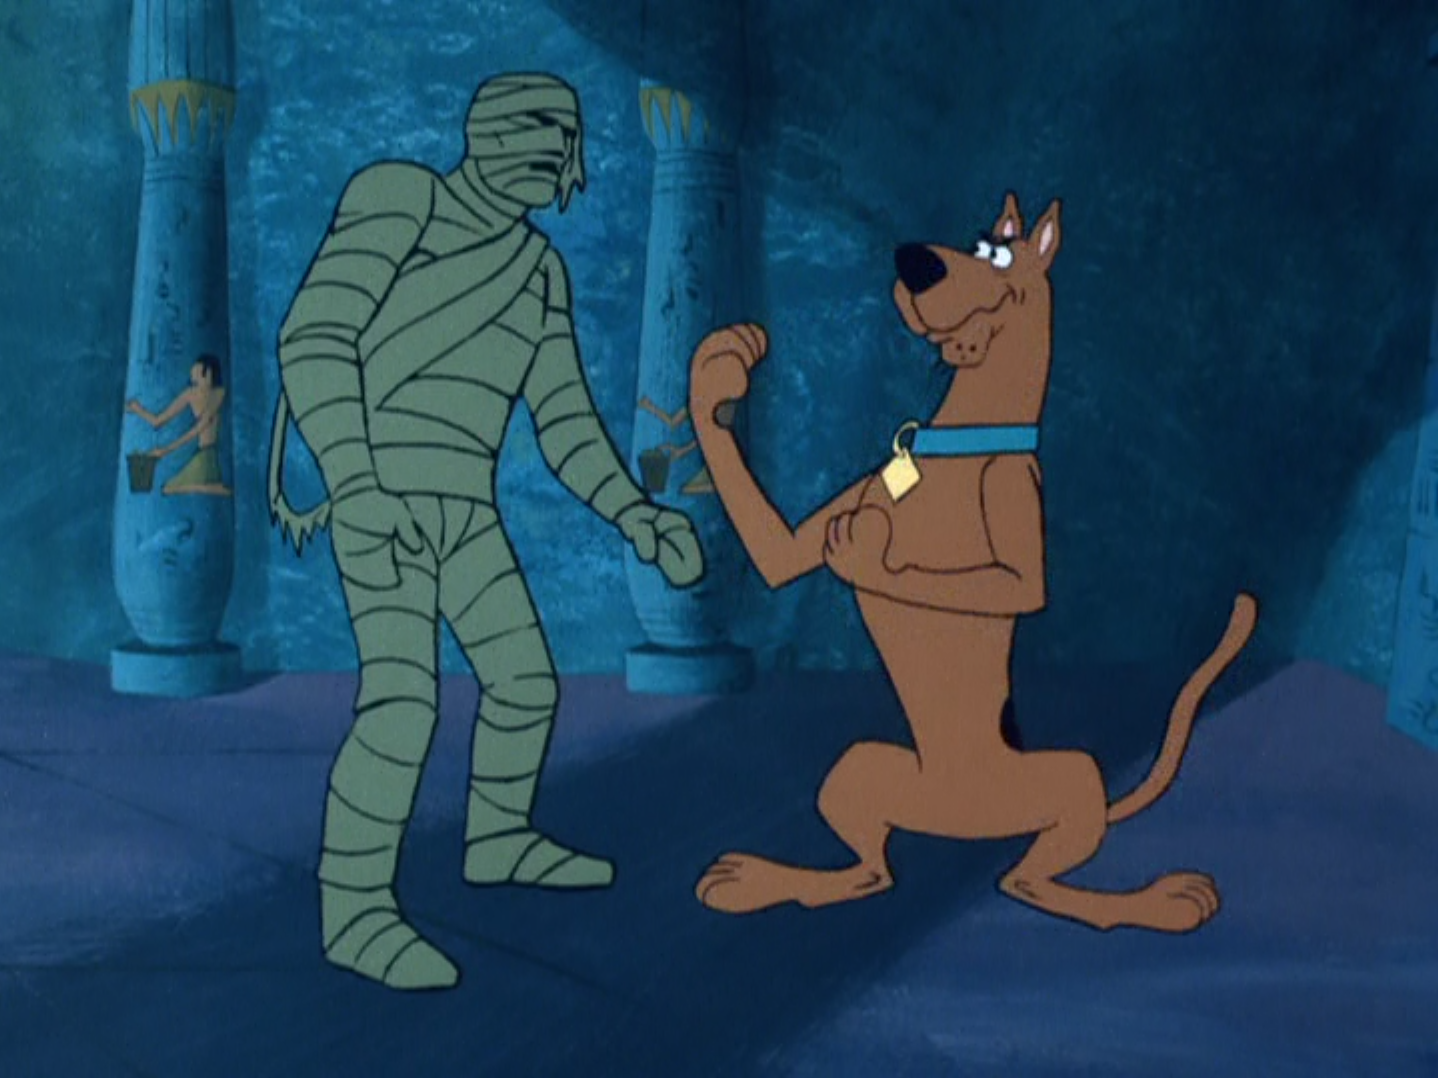 Scooby Doo and a Mummy, Too | Scoobypedia | Fandom